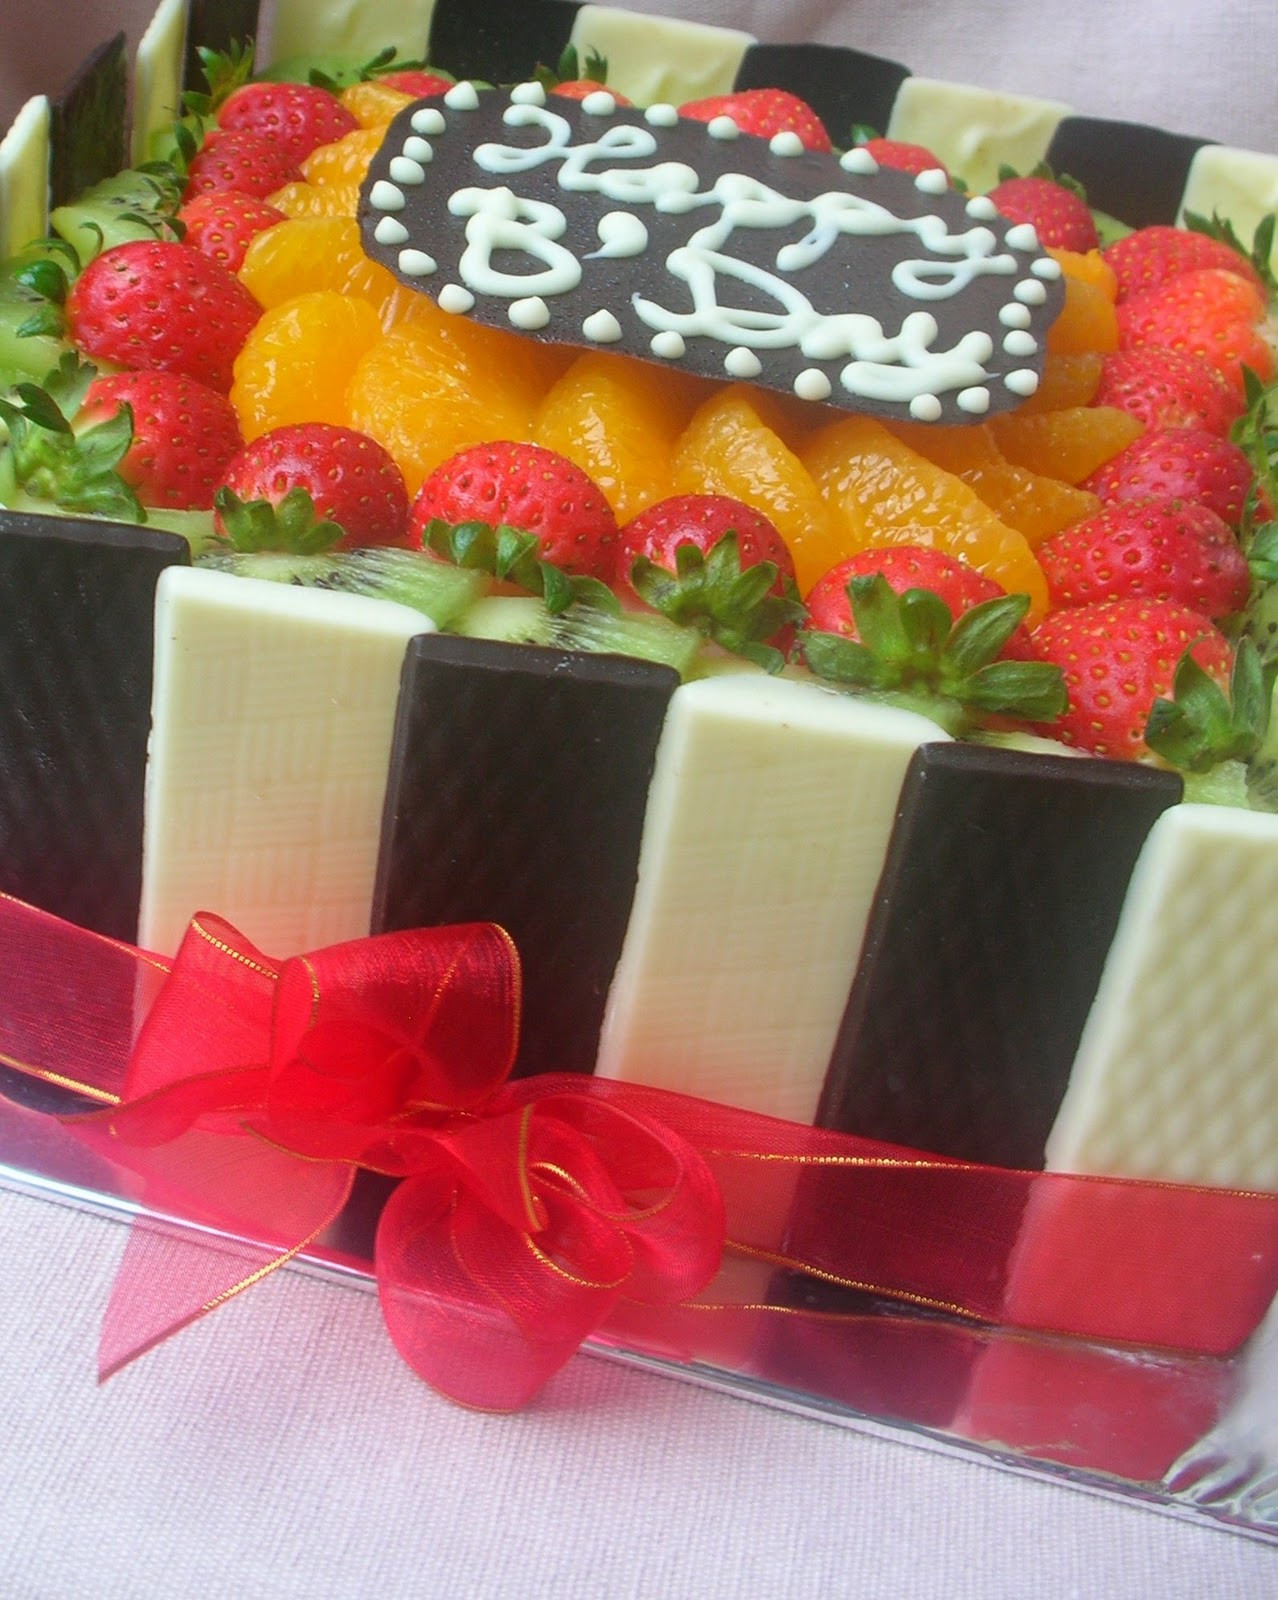 Best ideas about Birthday Cake For Husband . Save or Pin Say with cake Birthday cake for Melsi s husband Now.